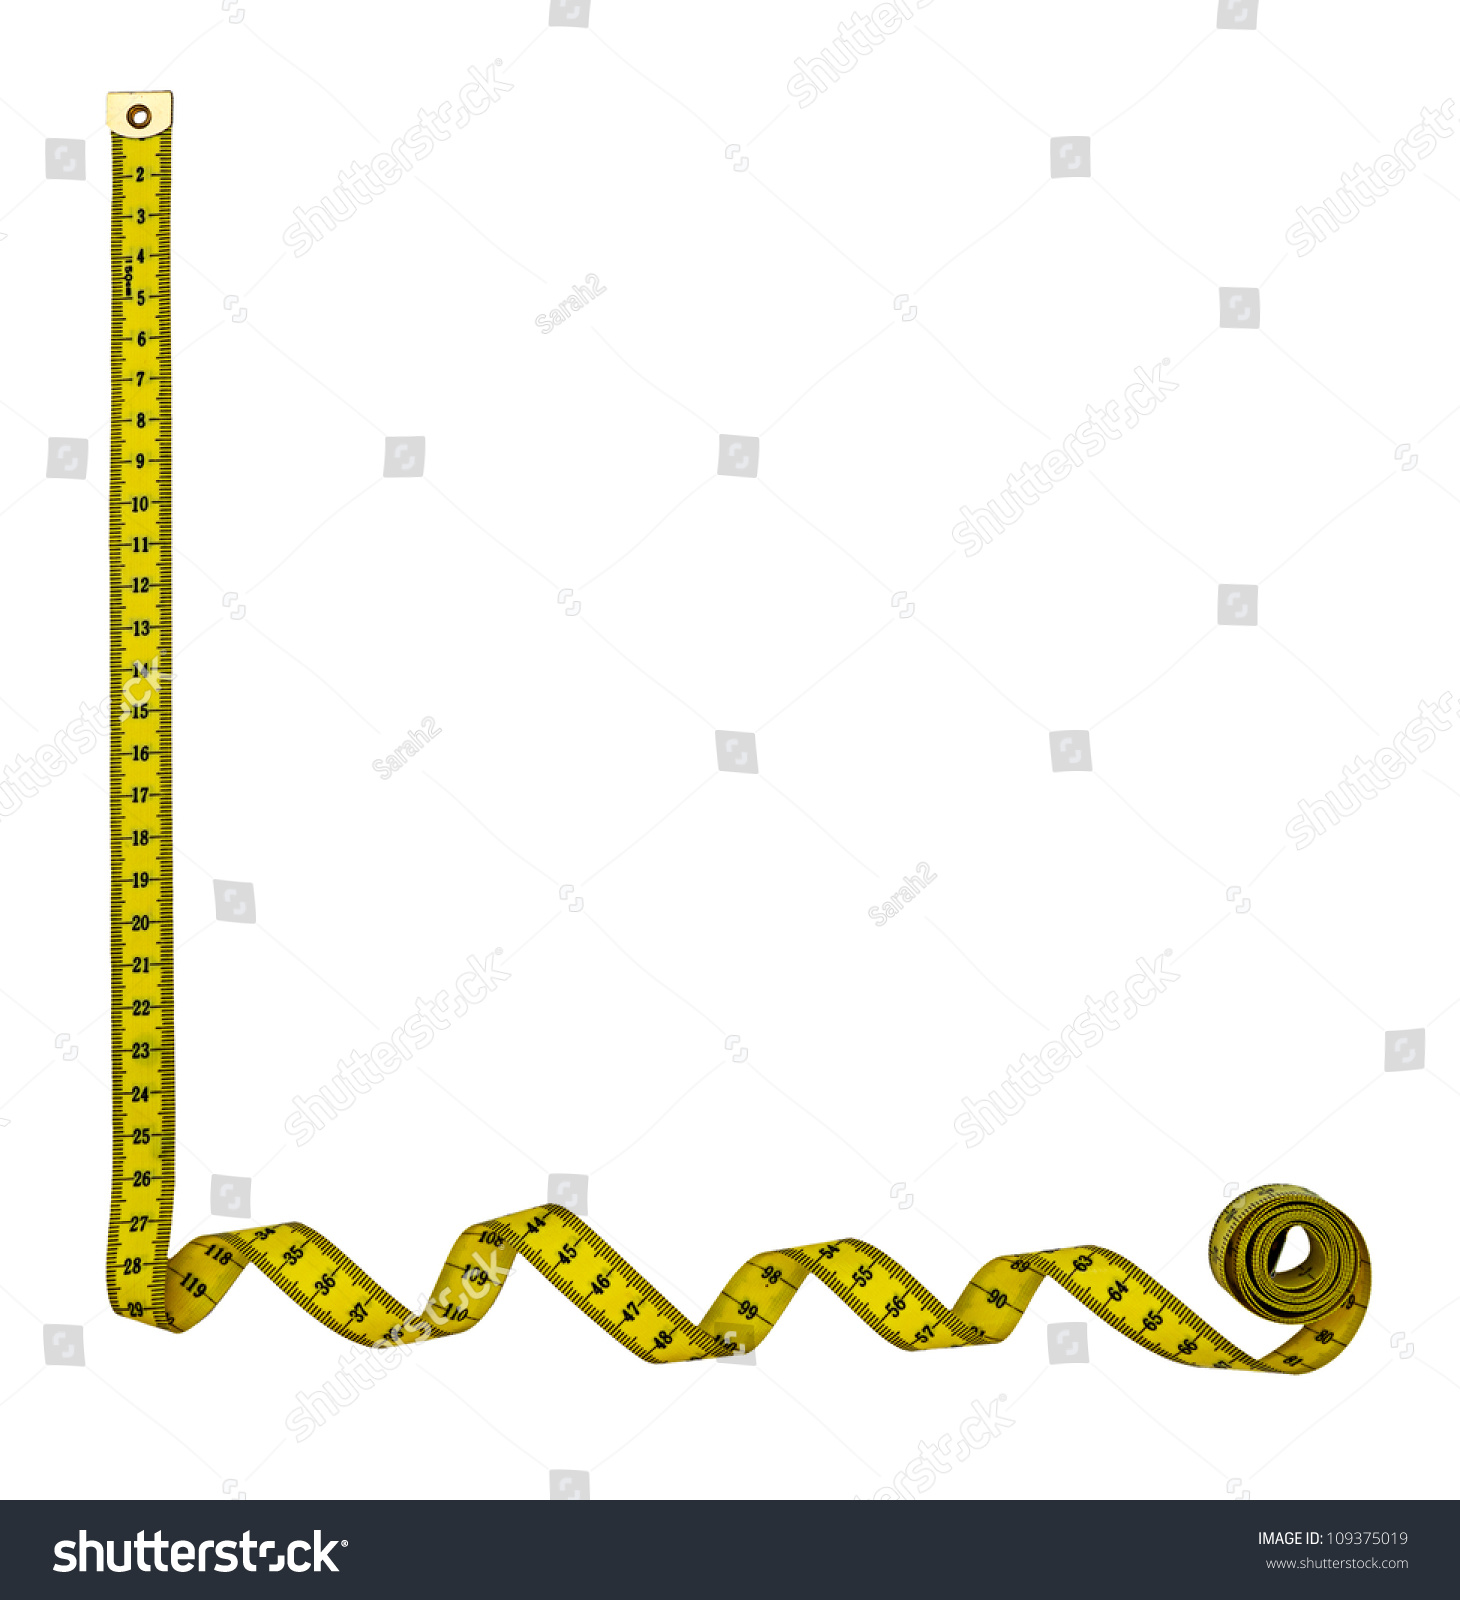 Tape measure border frame - left hand corner, isolated over white - Tape Measure Border PNG